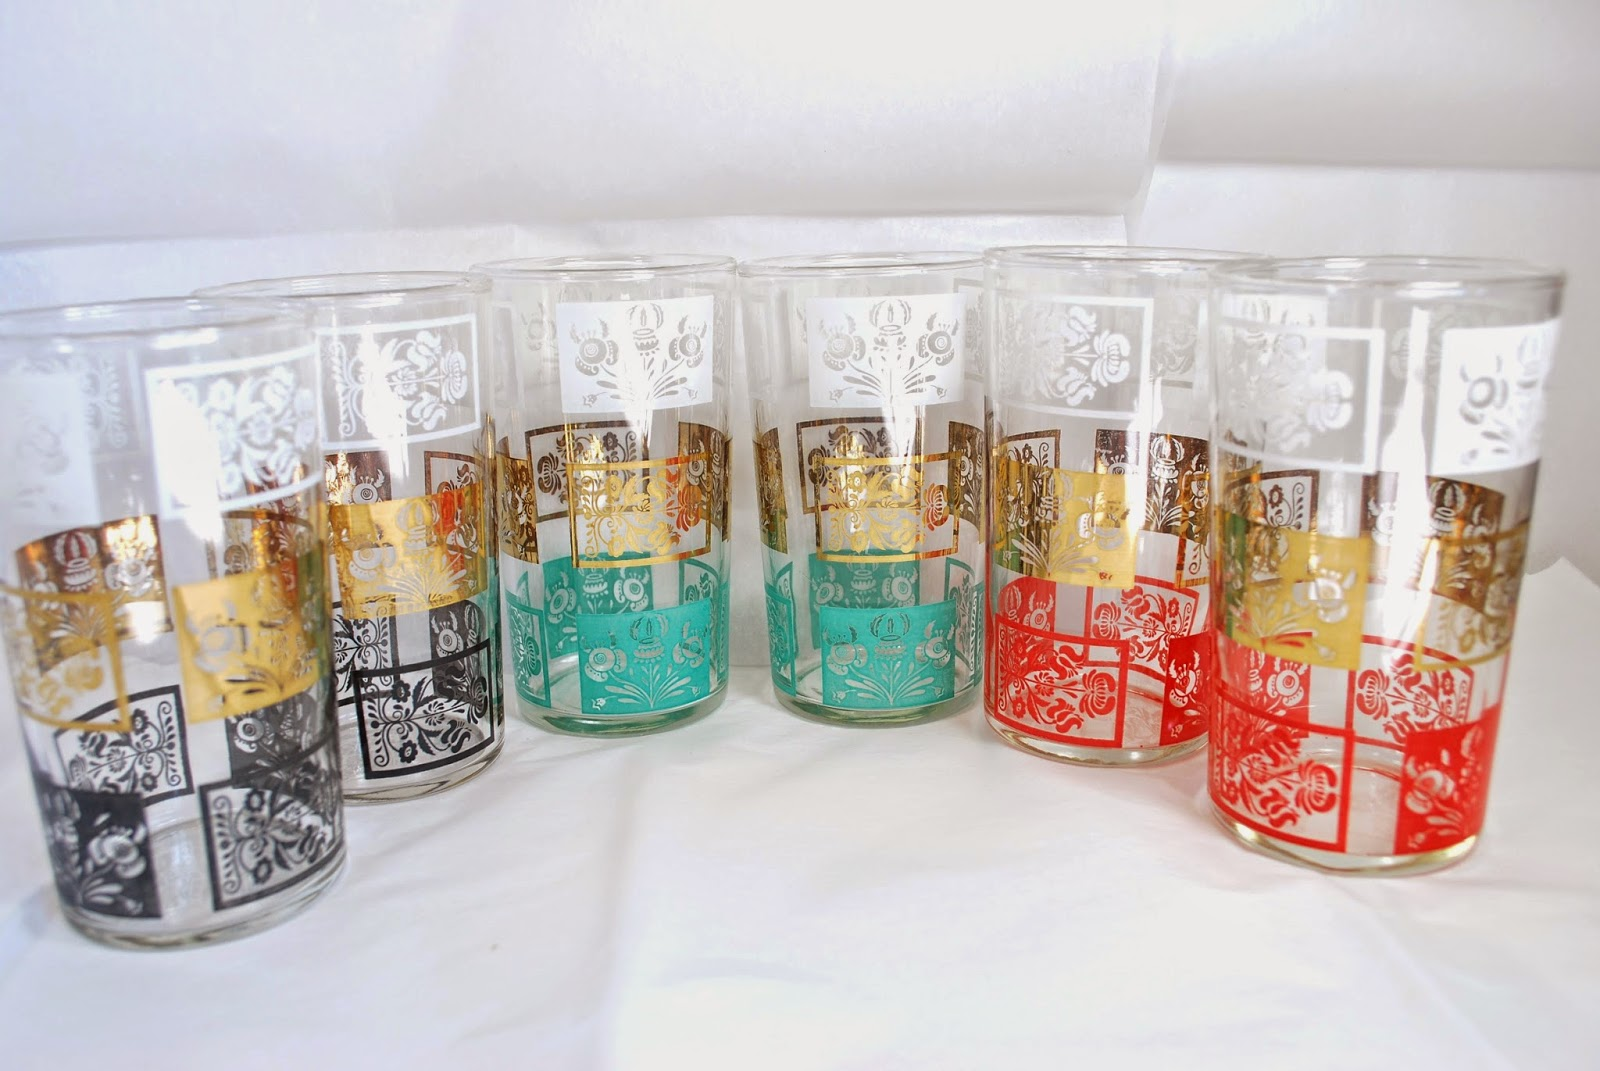 https://www.etsy.com/ca/listing/214933283/barware-set-of-6-tumblers-gold-and?ref=shop_home_active_5